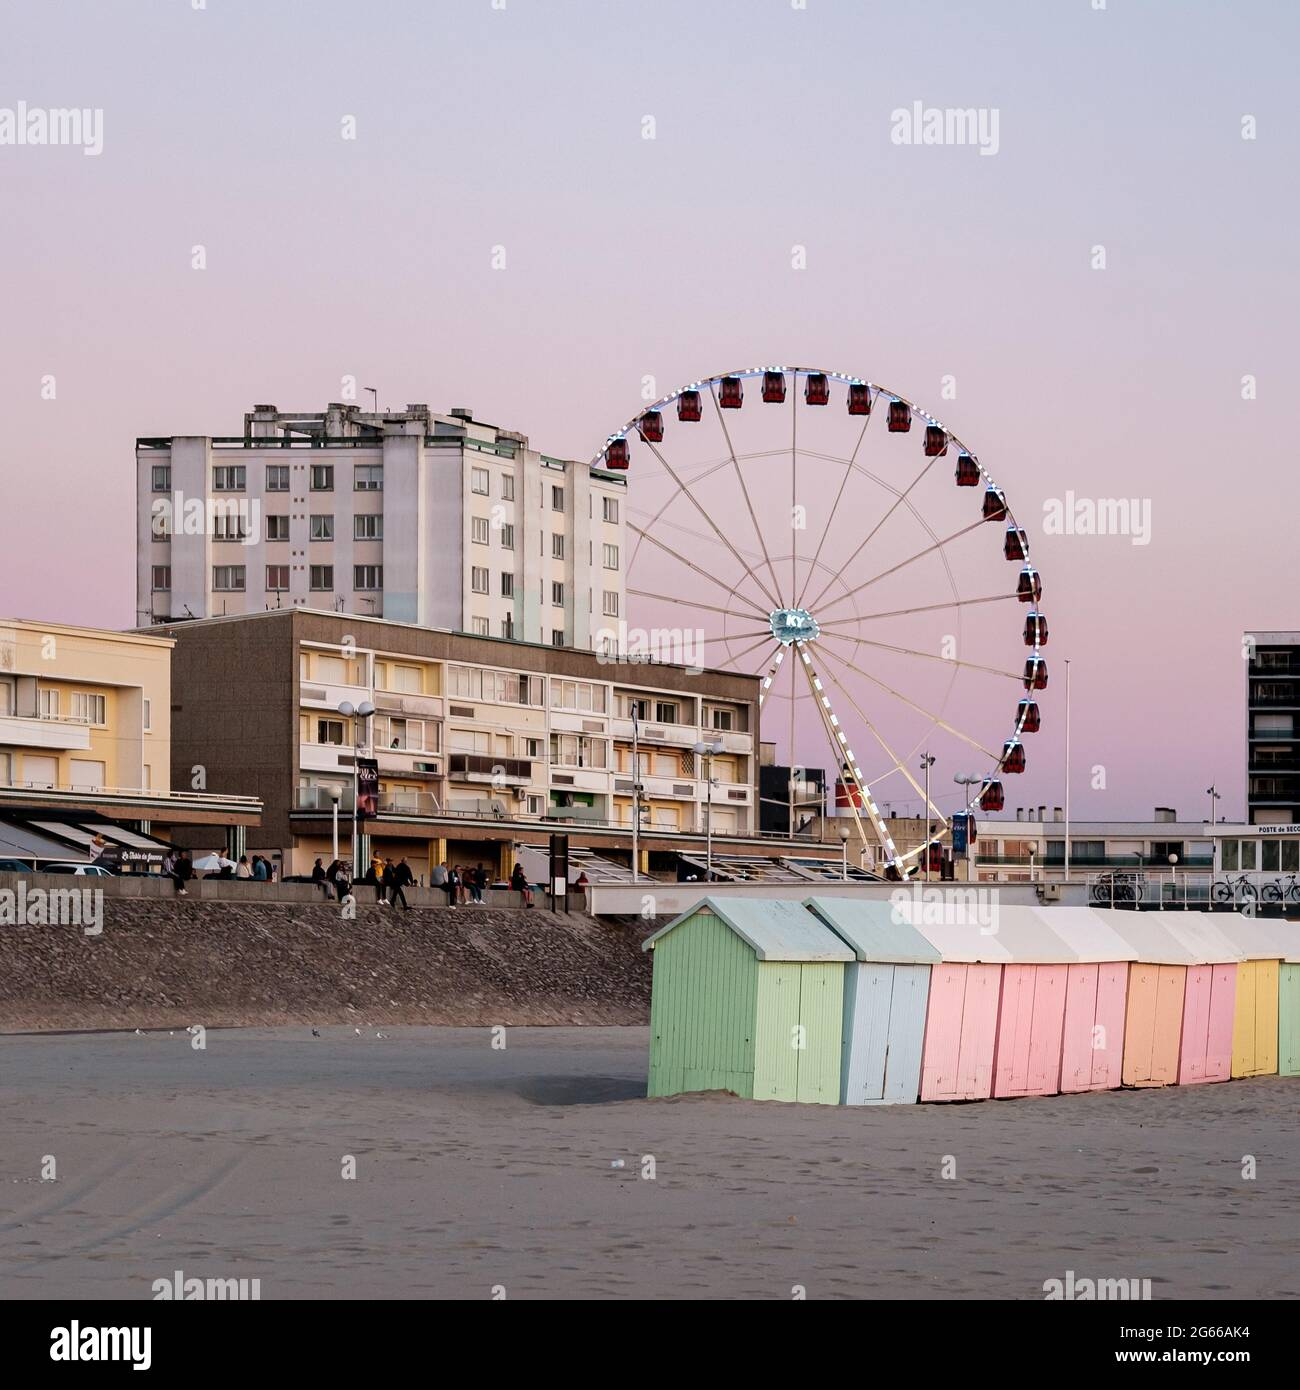 Pastel colored beach cabins and giant wheel on the beach of Berck in France Stock Photo